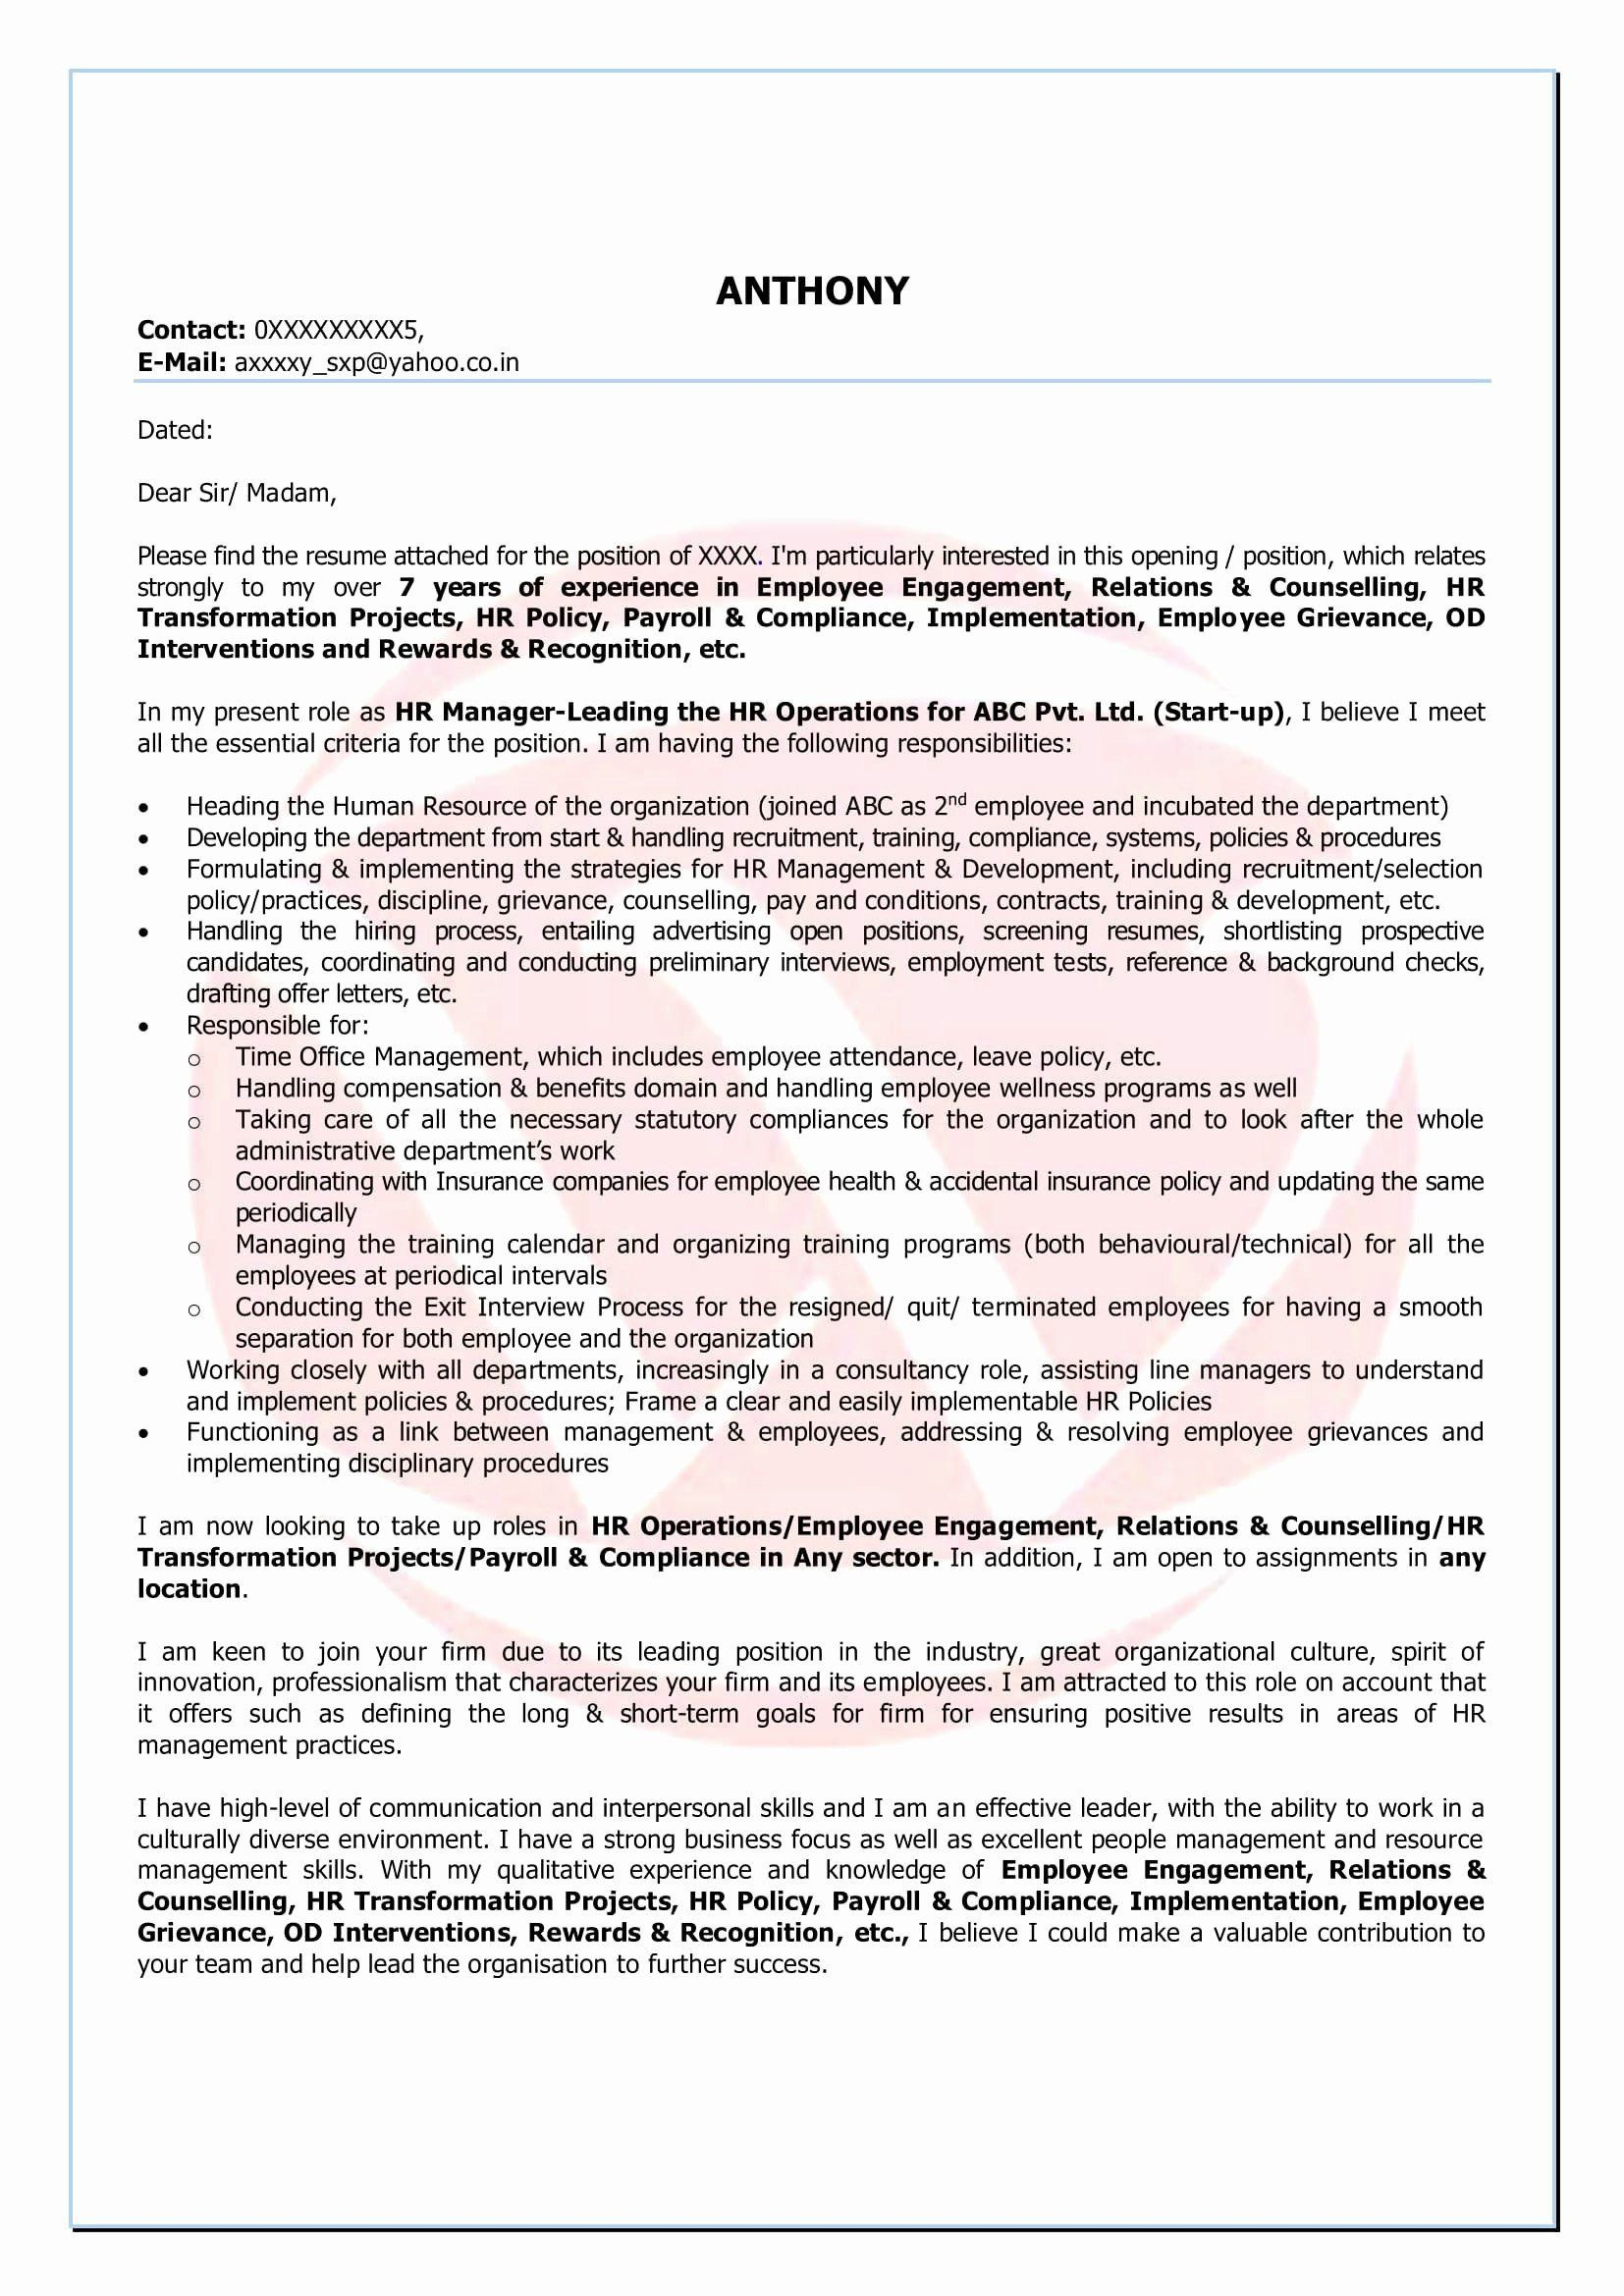 Office manager job description for resume 11 fice manager